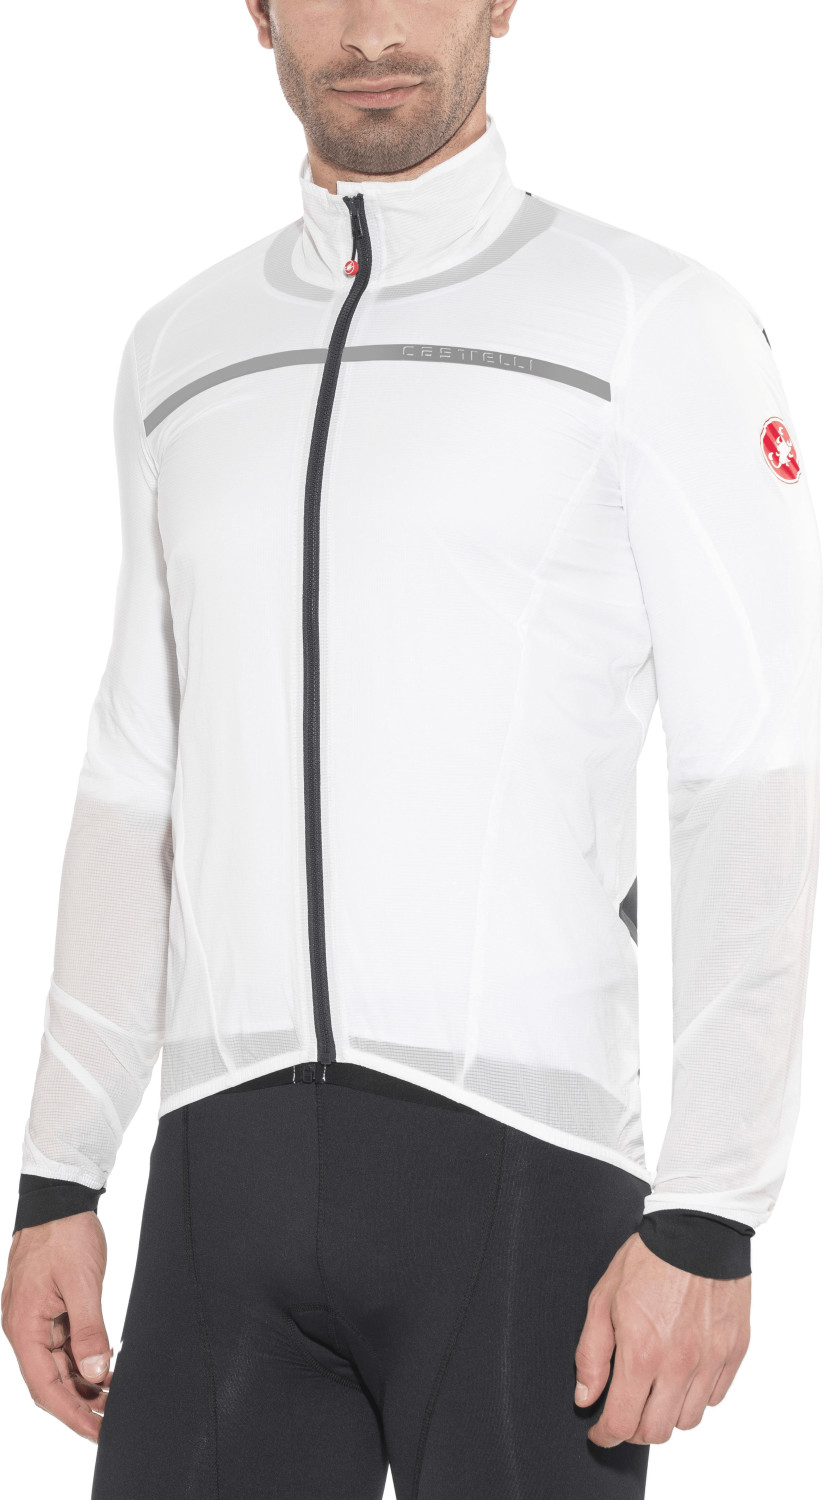 Castelli Superleggera Jacket white